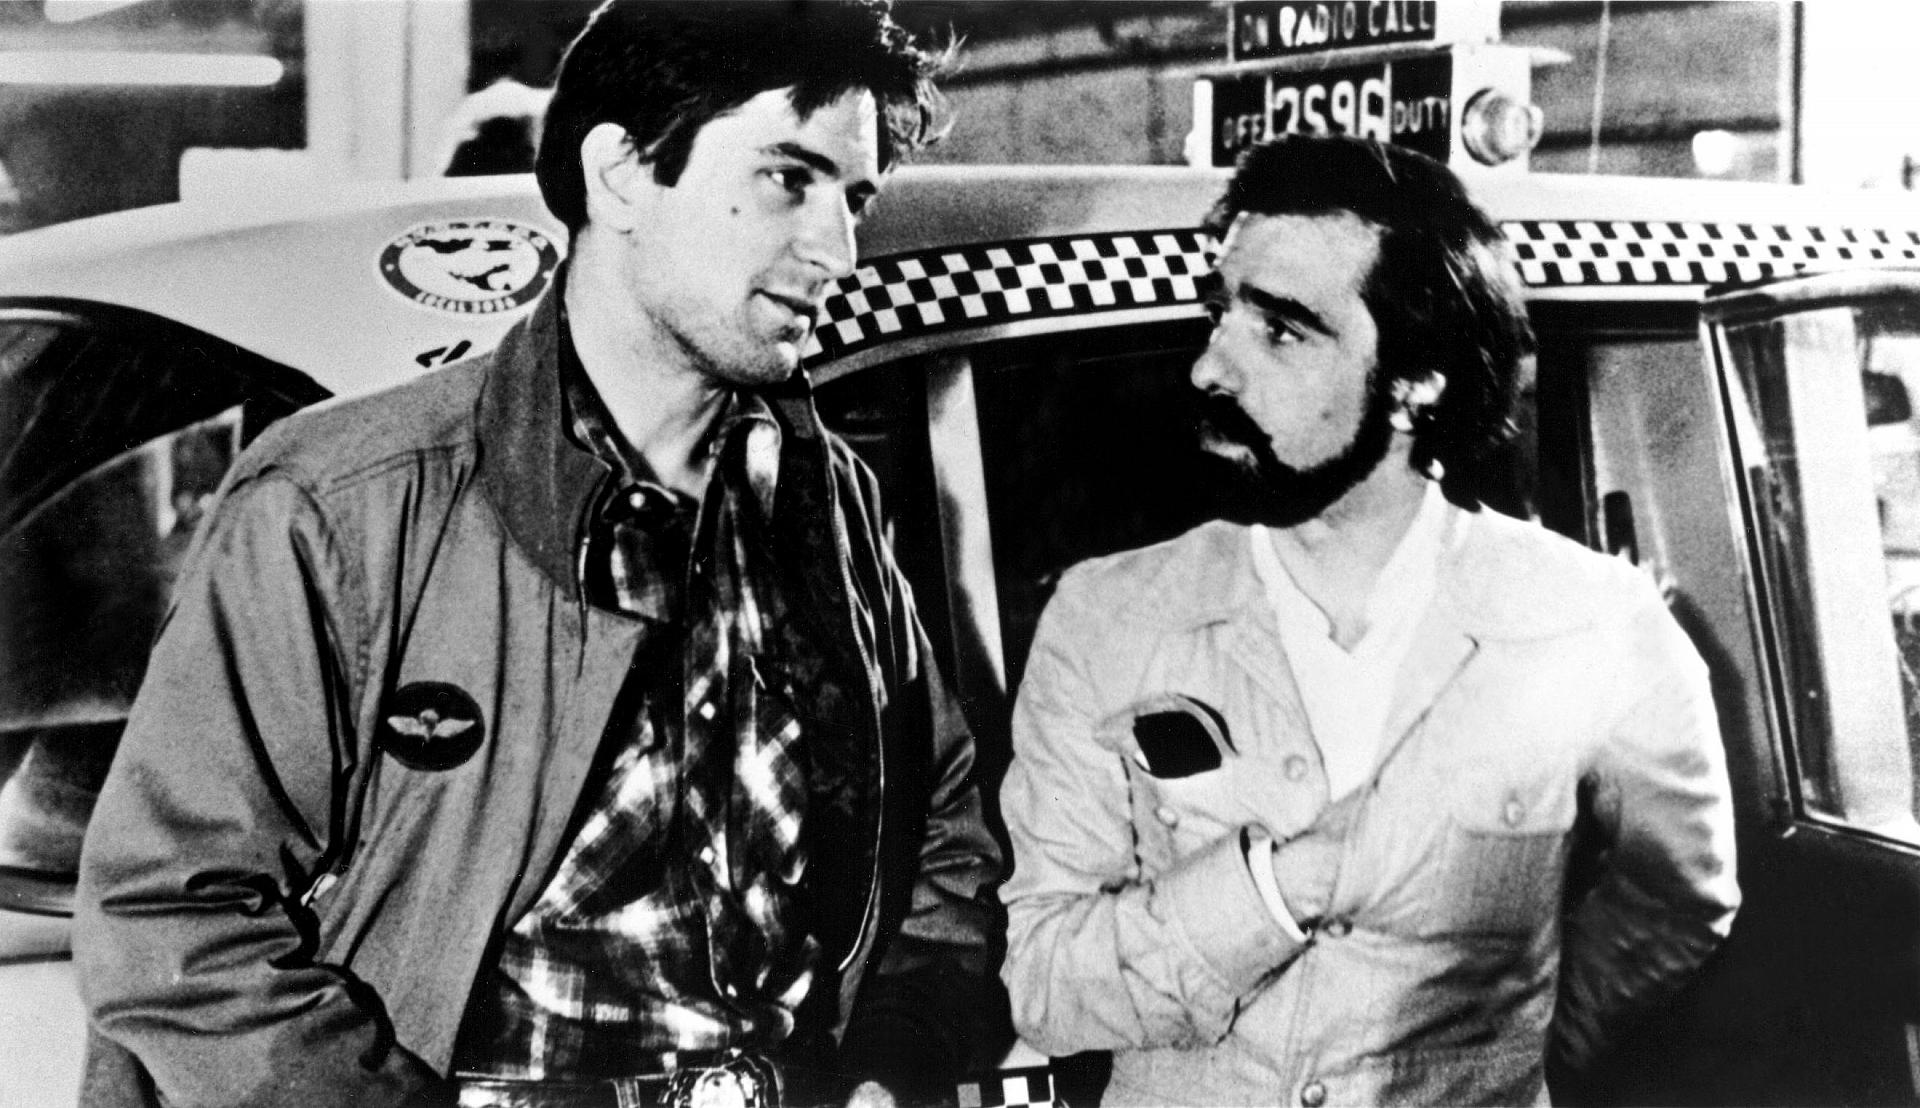 0taxi driver 1 Martin Scorsese in Five Films